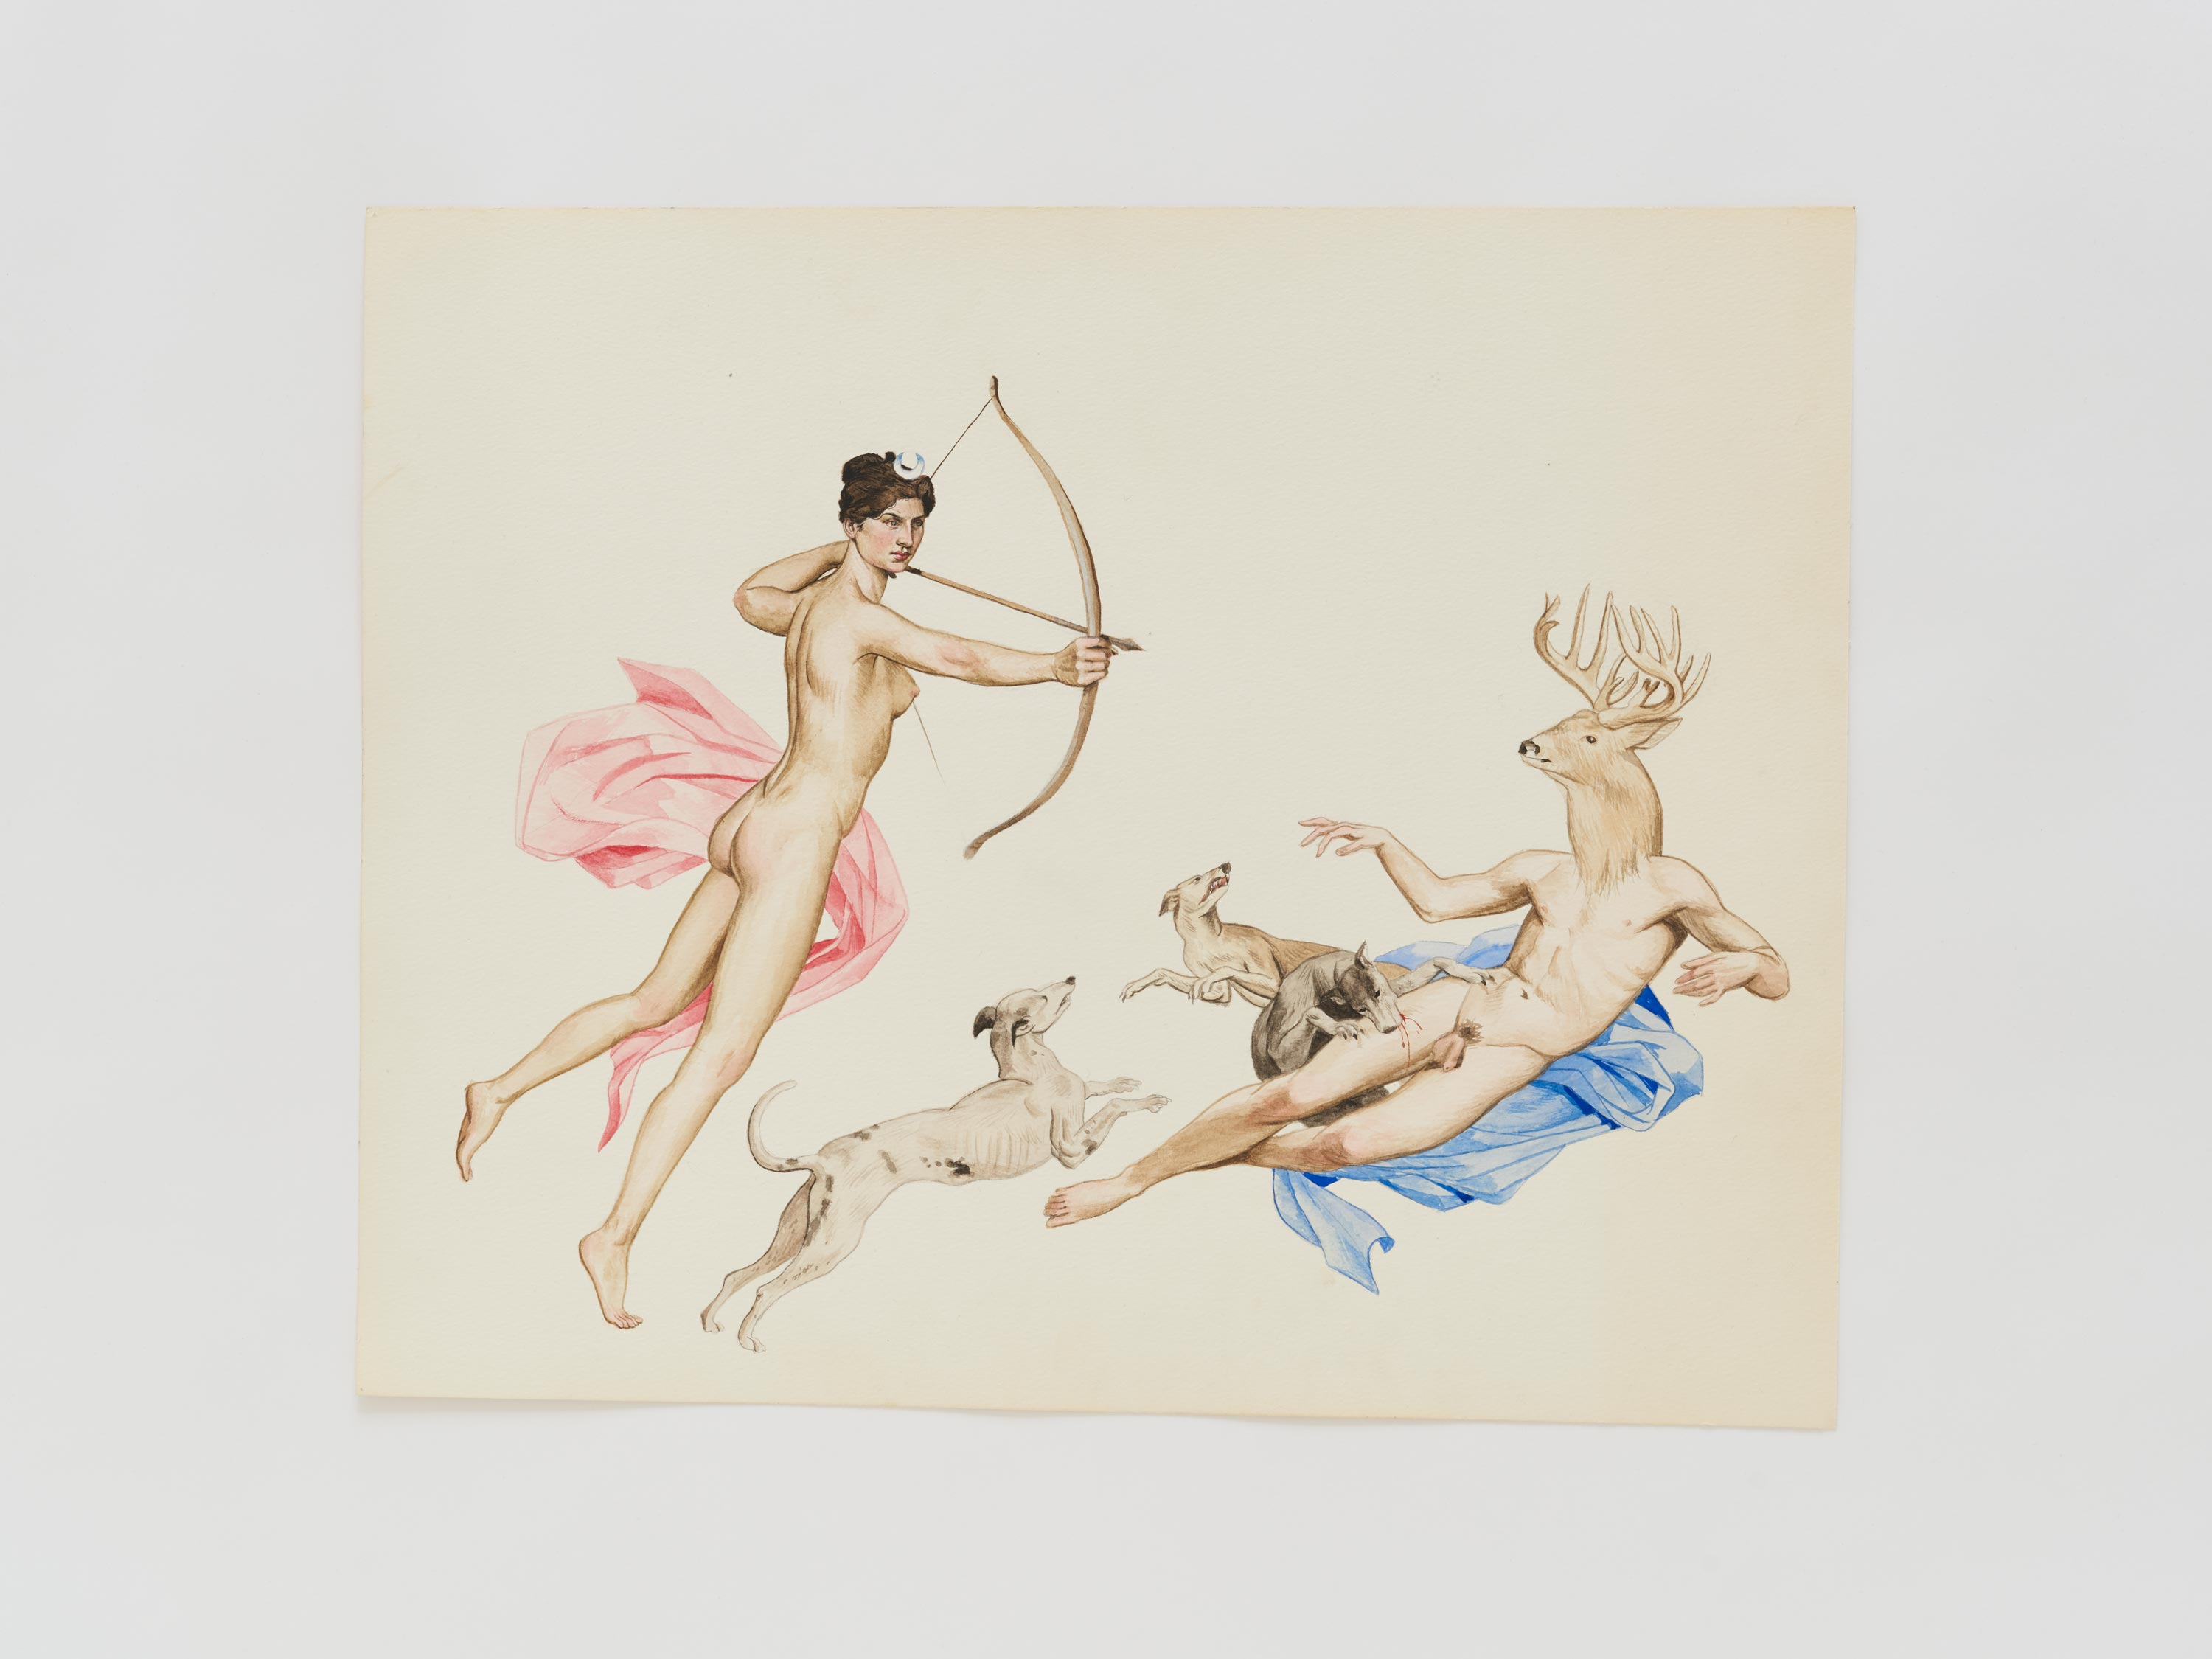 <p>Diana and Actaeon</p>